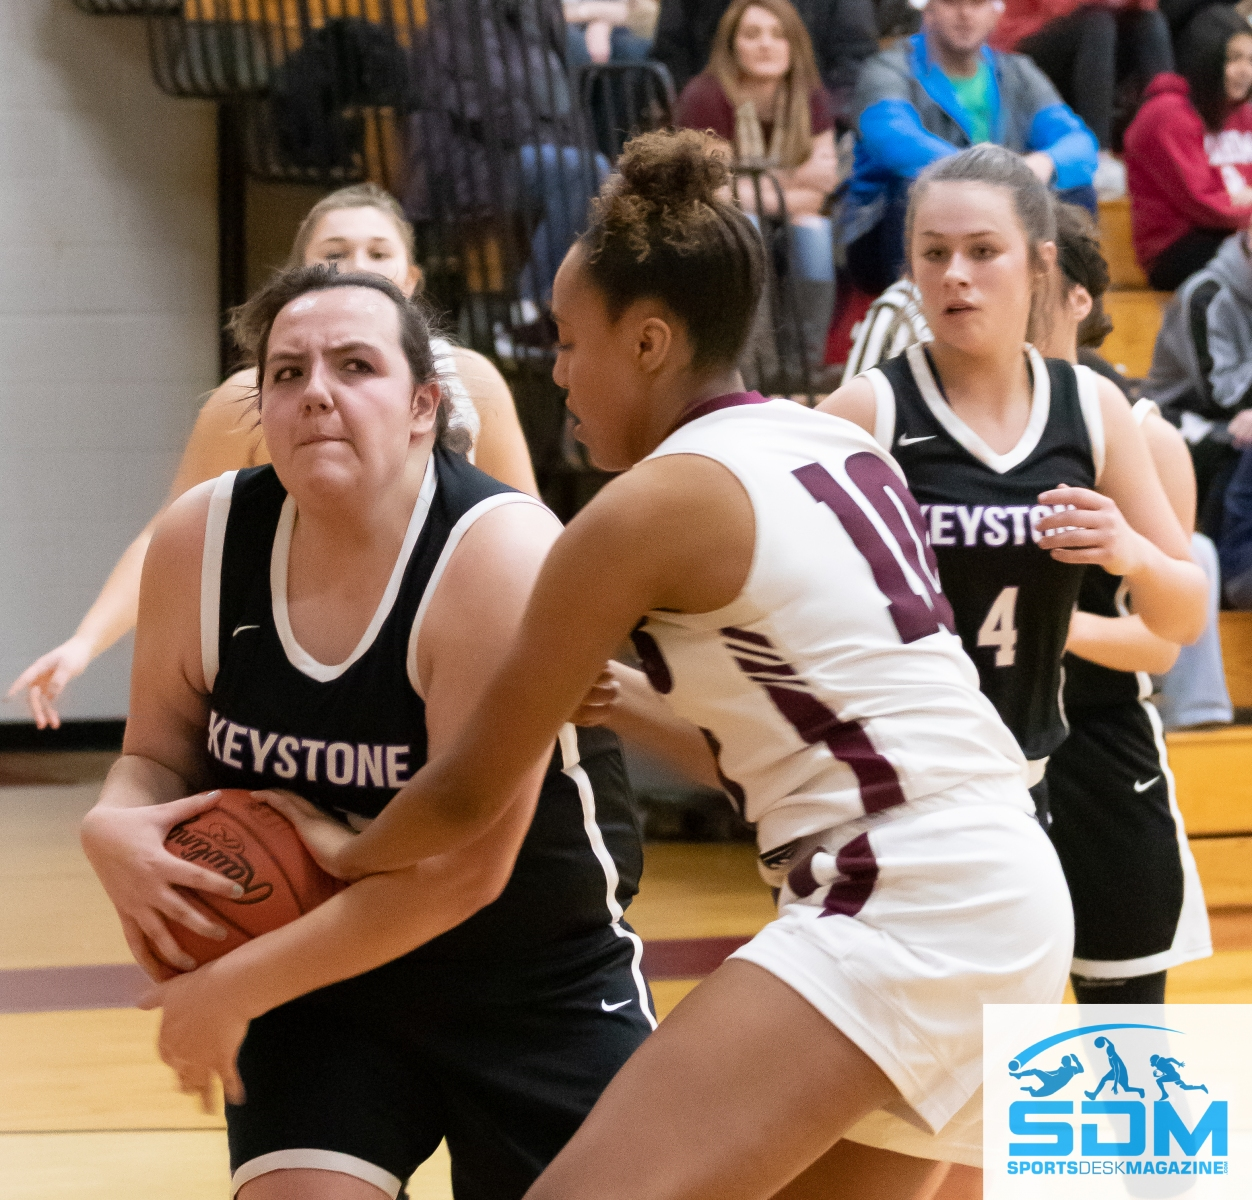 012220-Keystone@Wellington-GBK-6